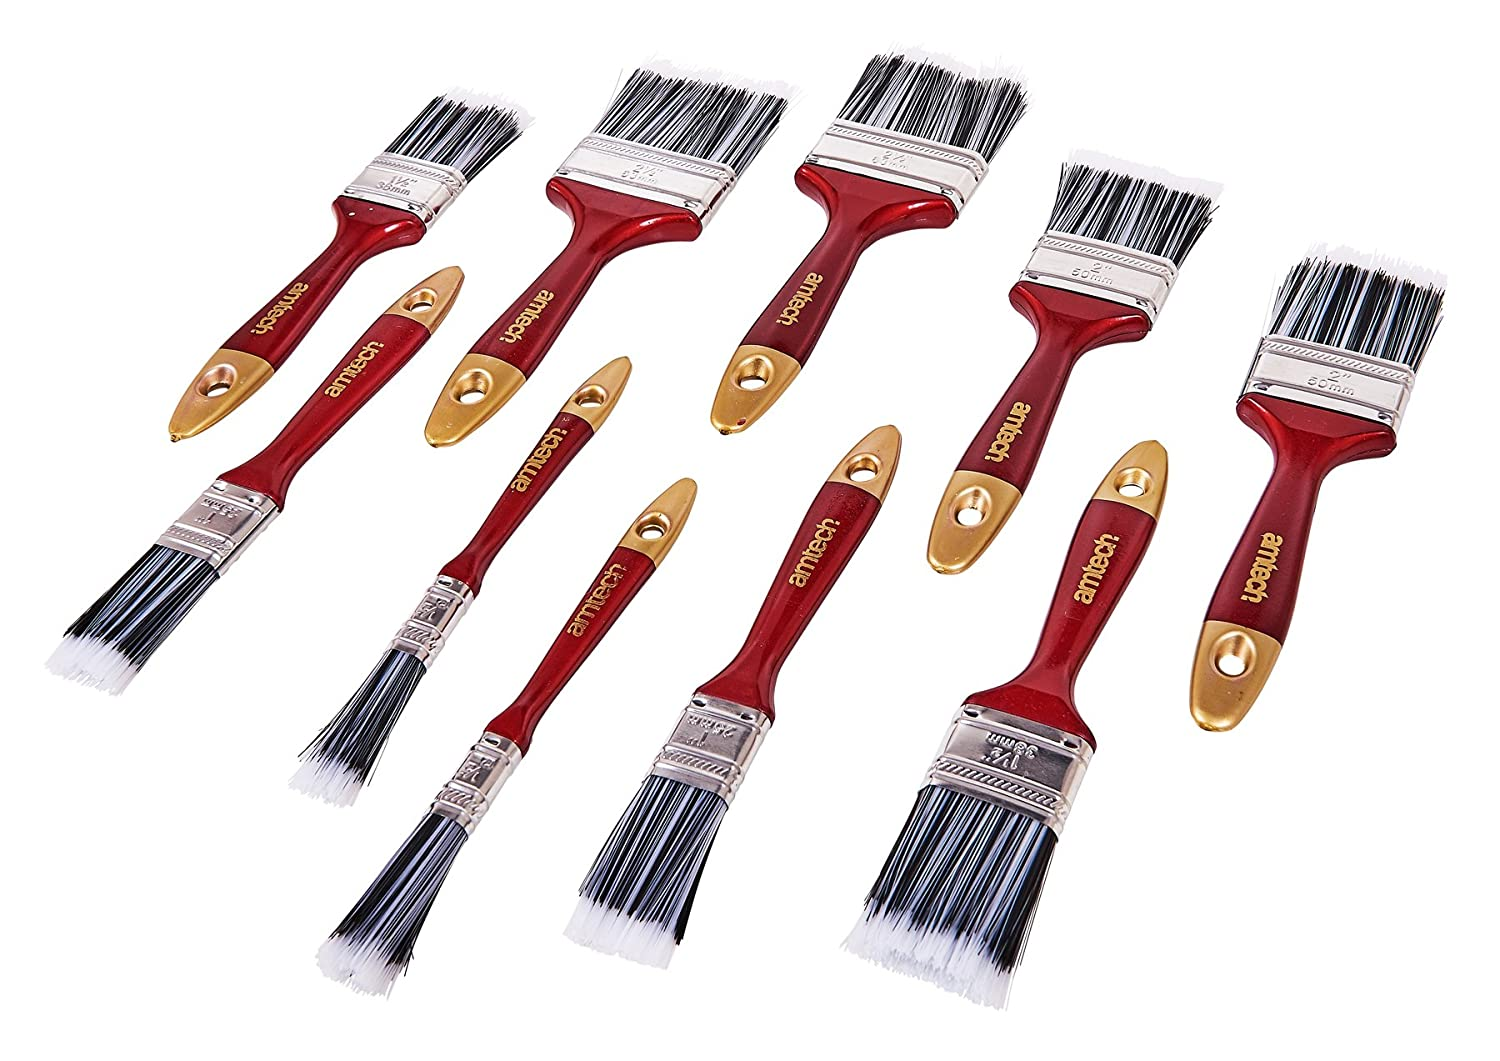 S3940 Am-Tech 10 St/ück Paint Brush Set